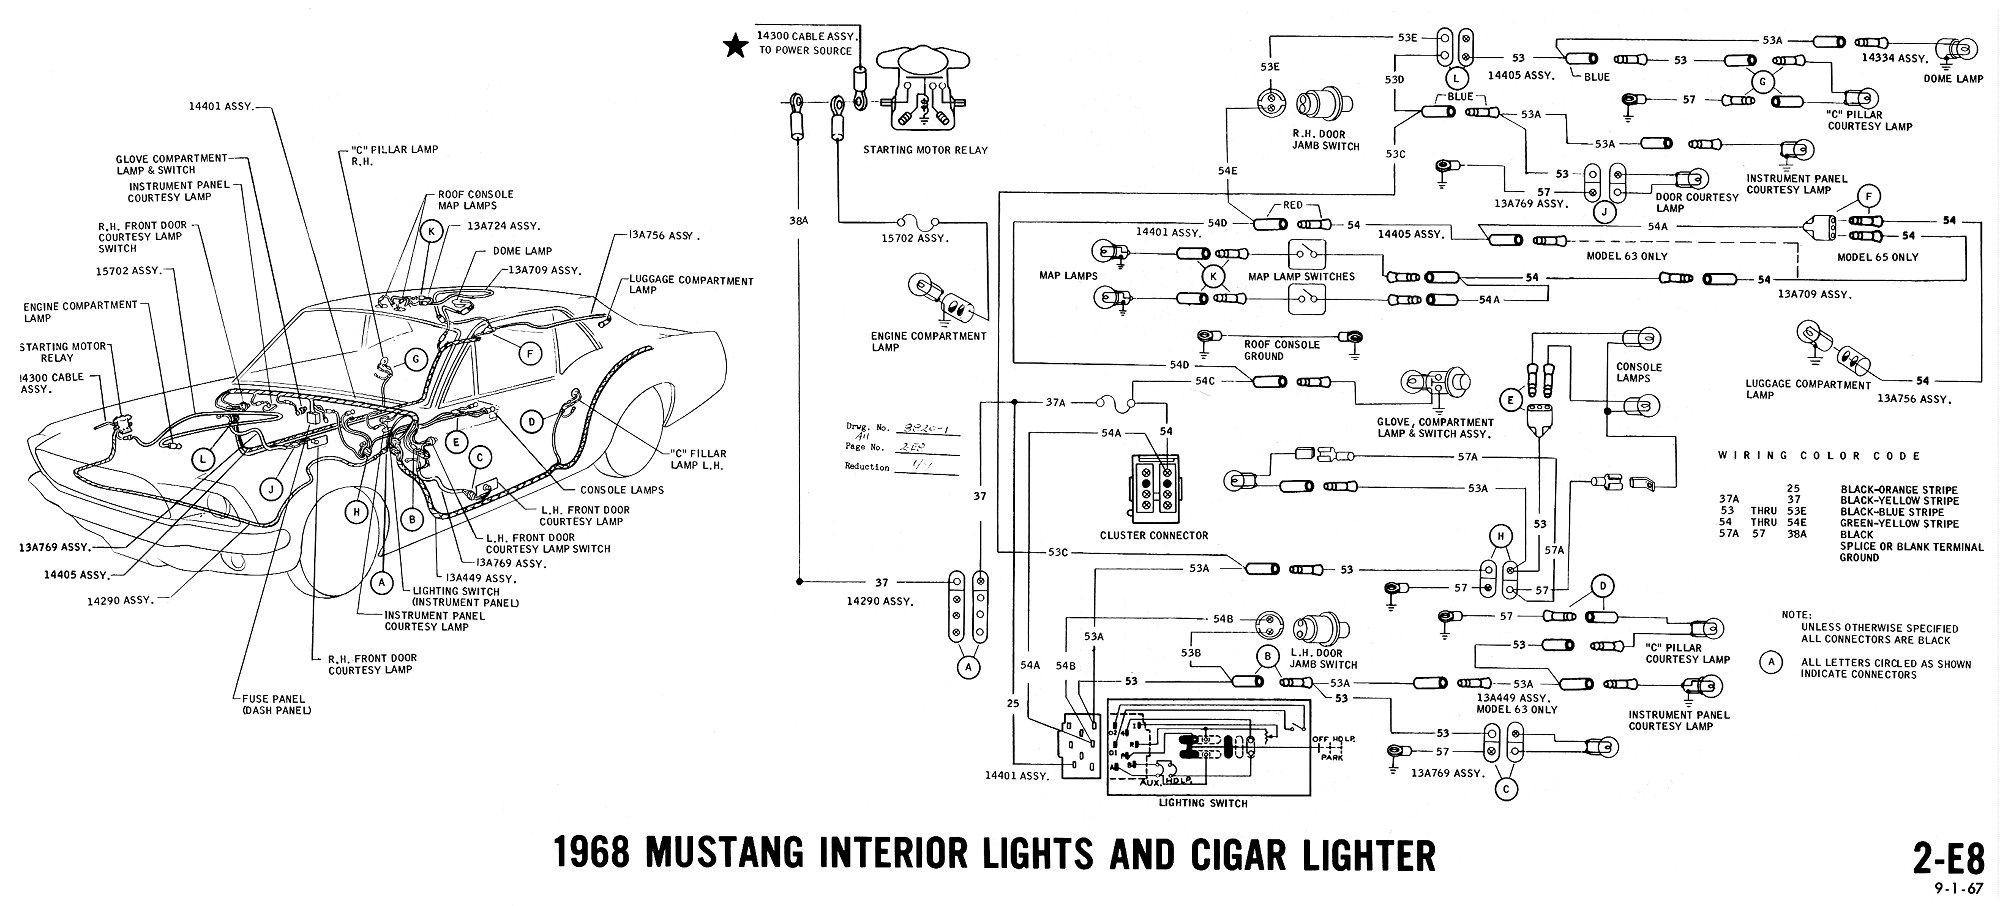 E8 1968 mustang wiring diagrams evolving software 67 mustang complete wiring harness at bayanpartner.co